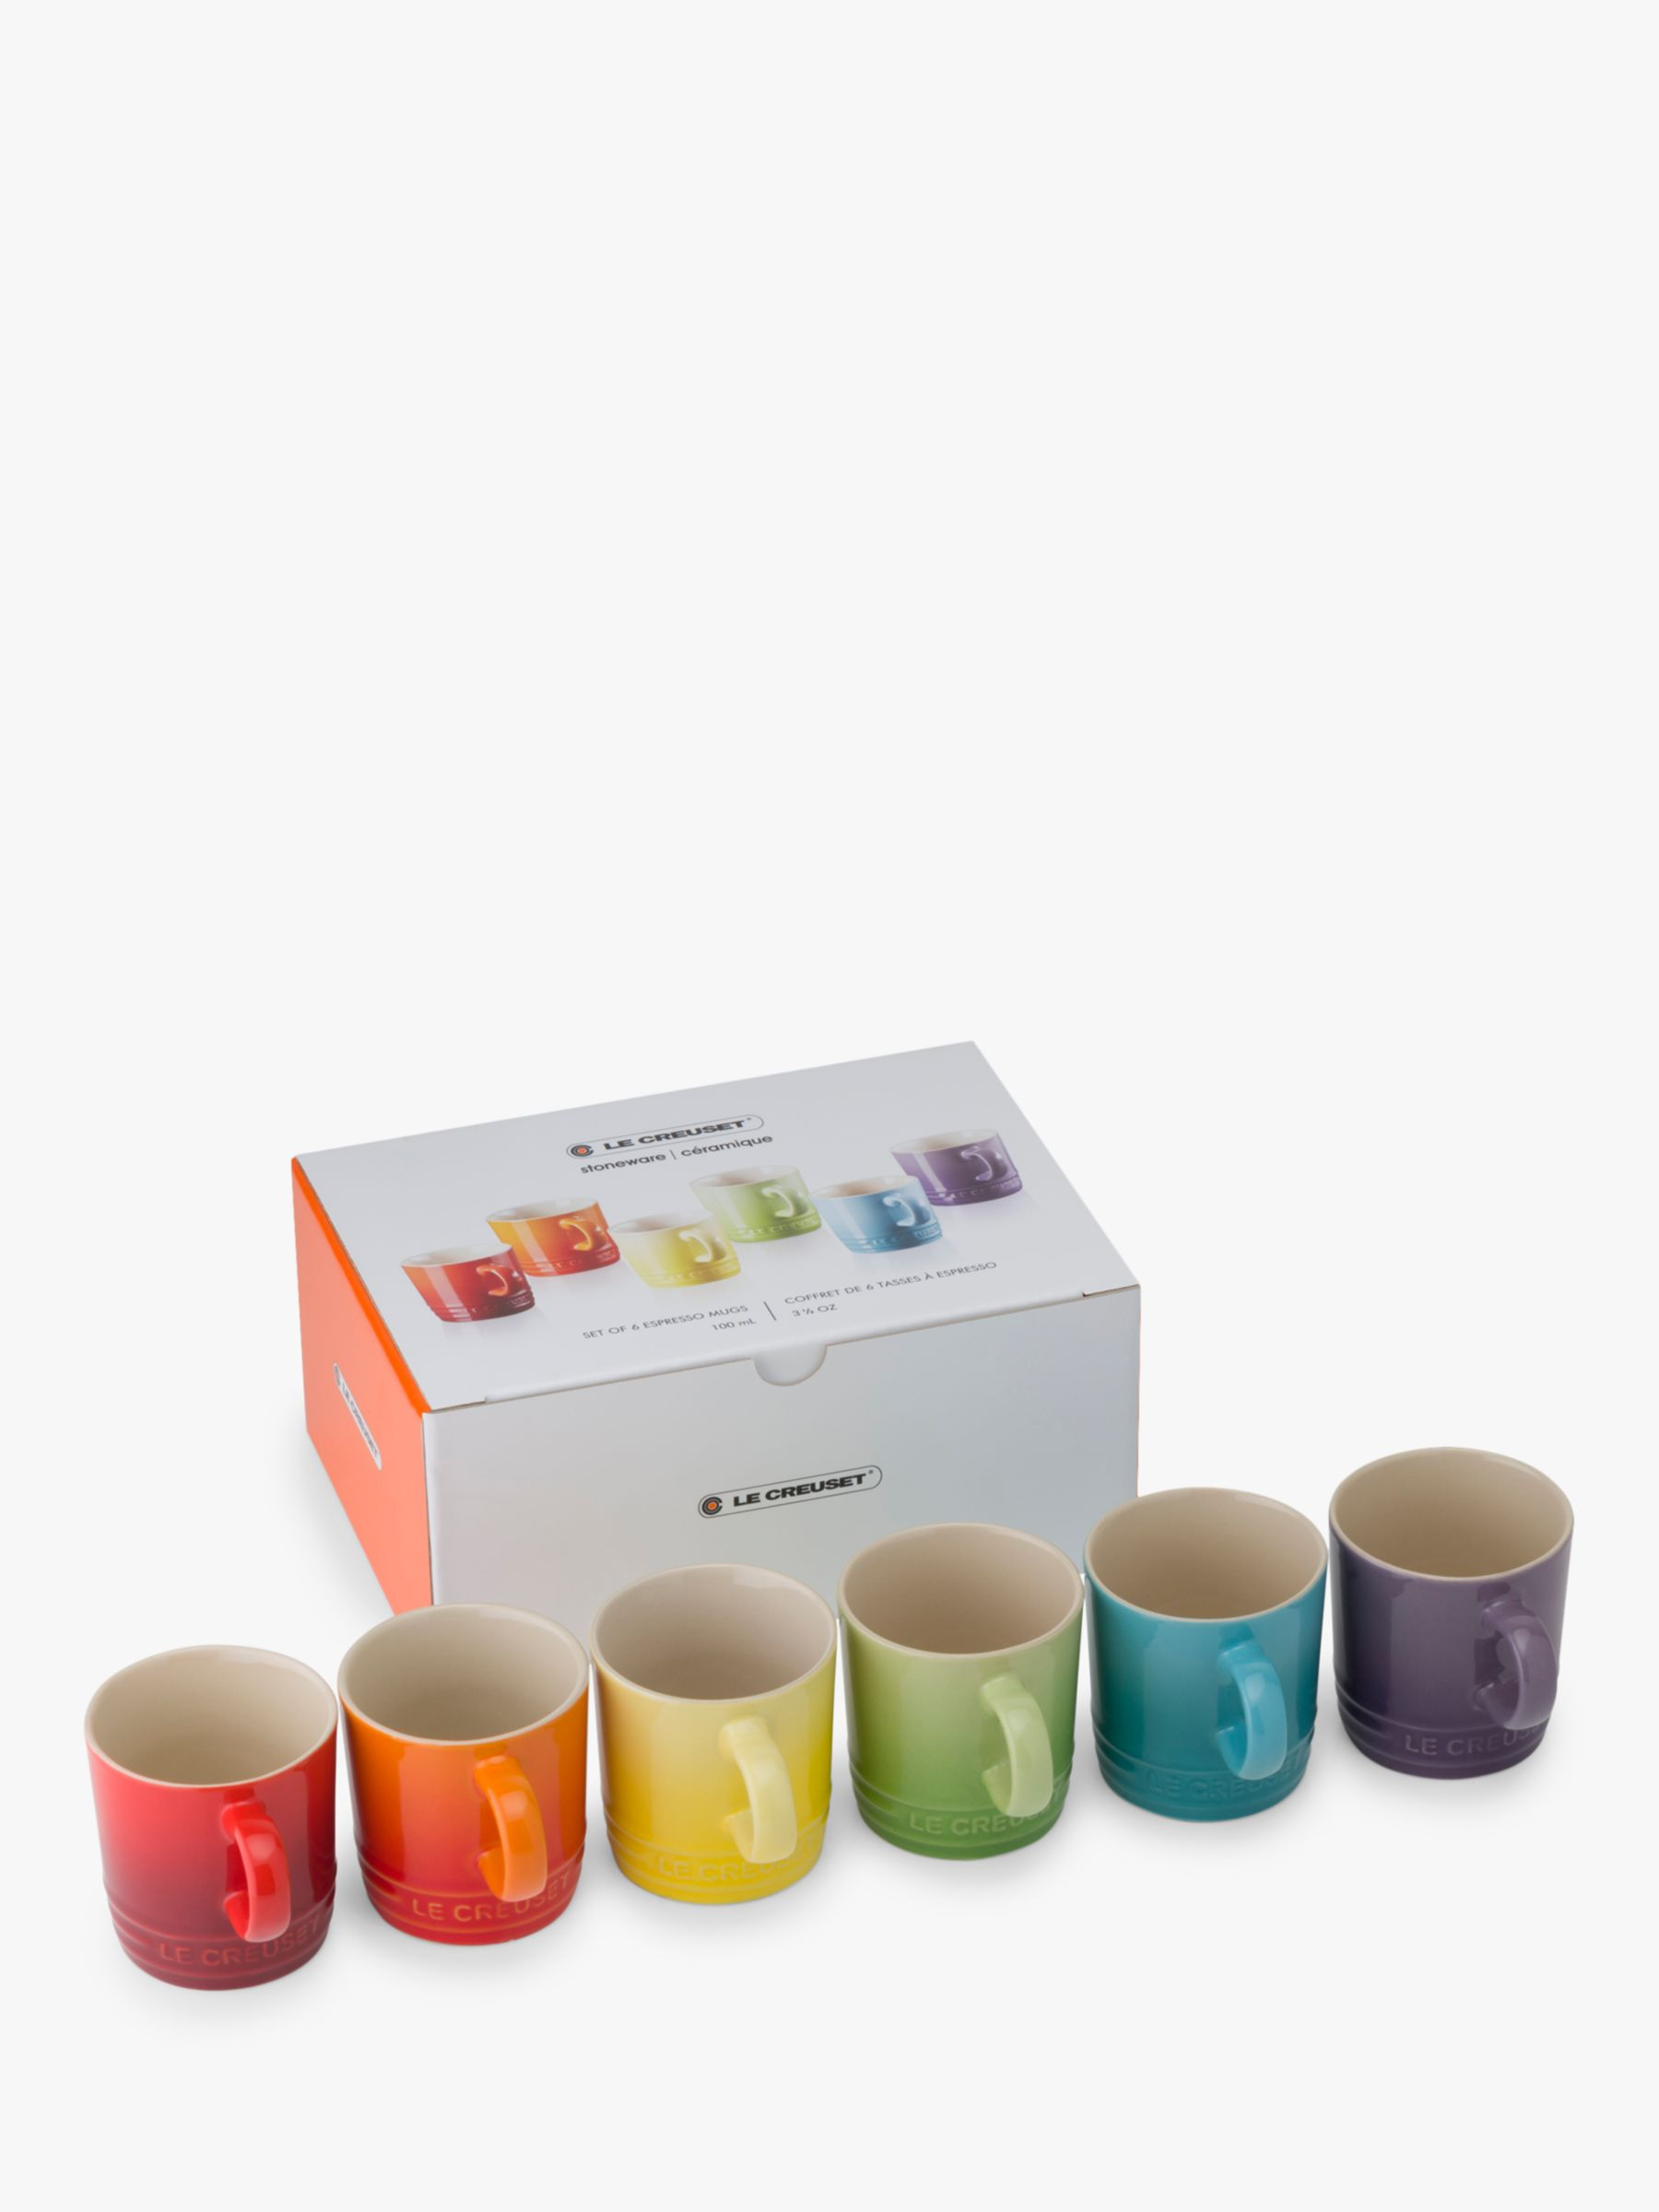 Le Creuset Le Creuset Rainbow Stoneware Espresso Mugs, Set of 6, 100ml